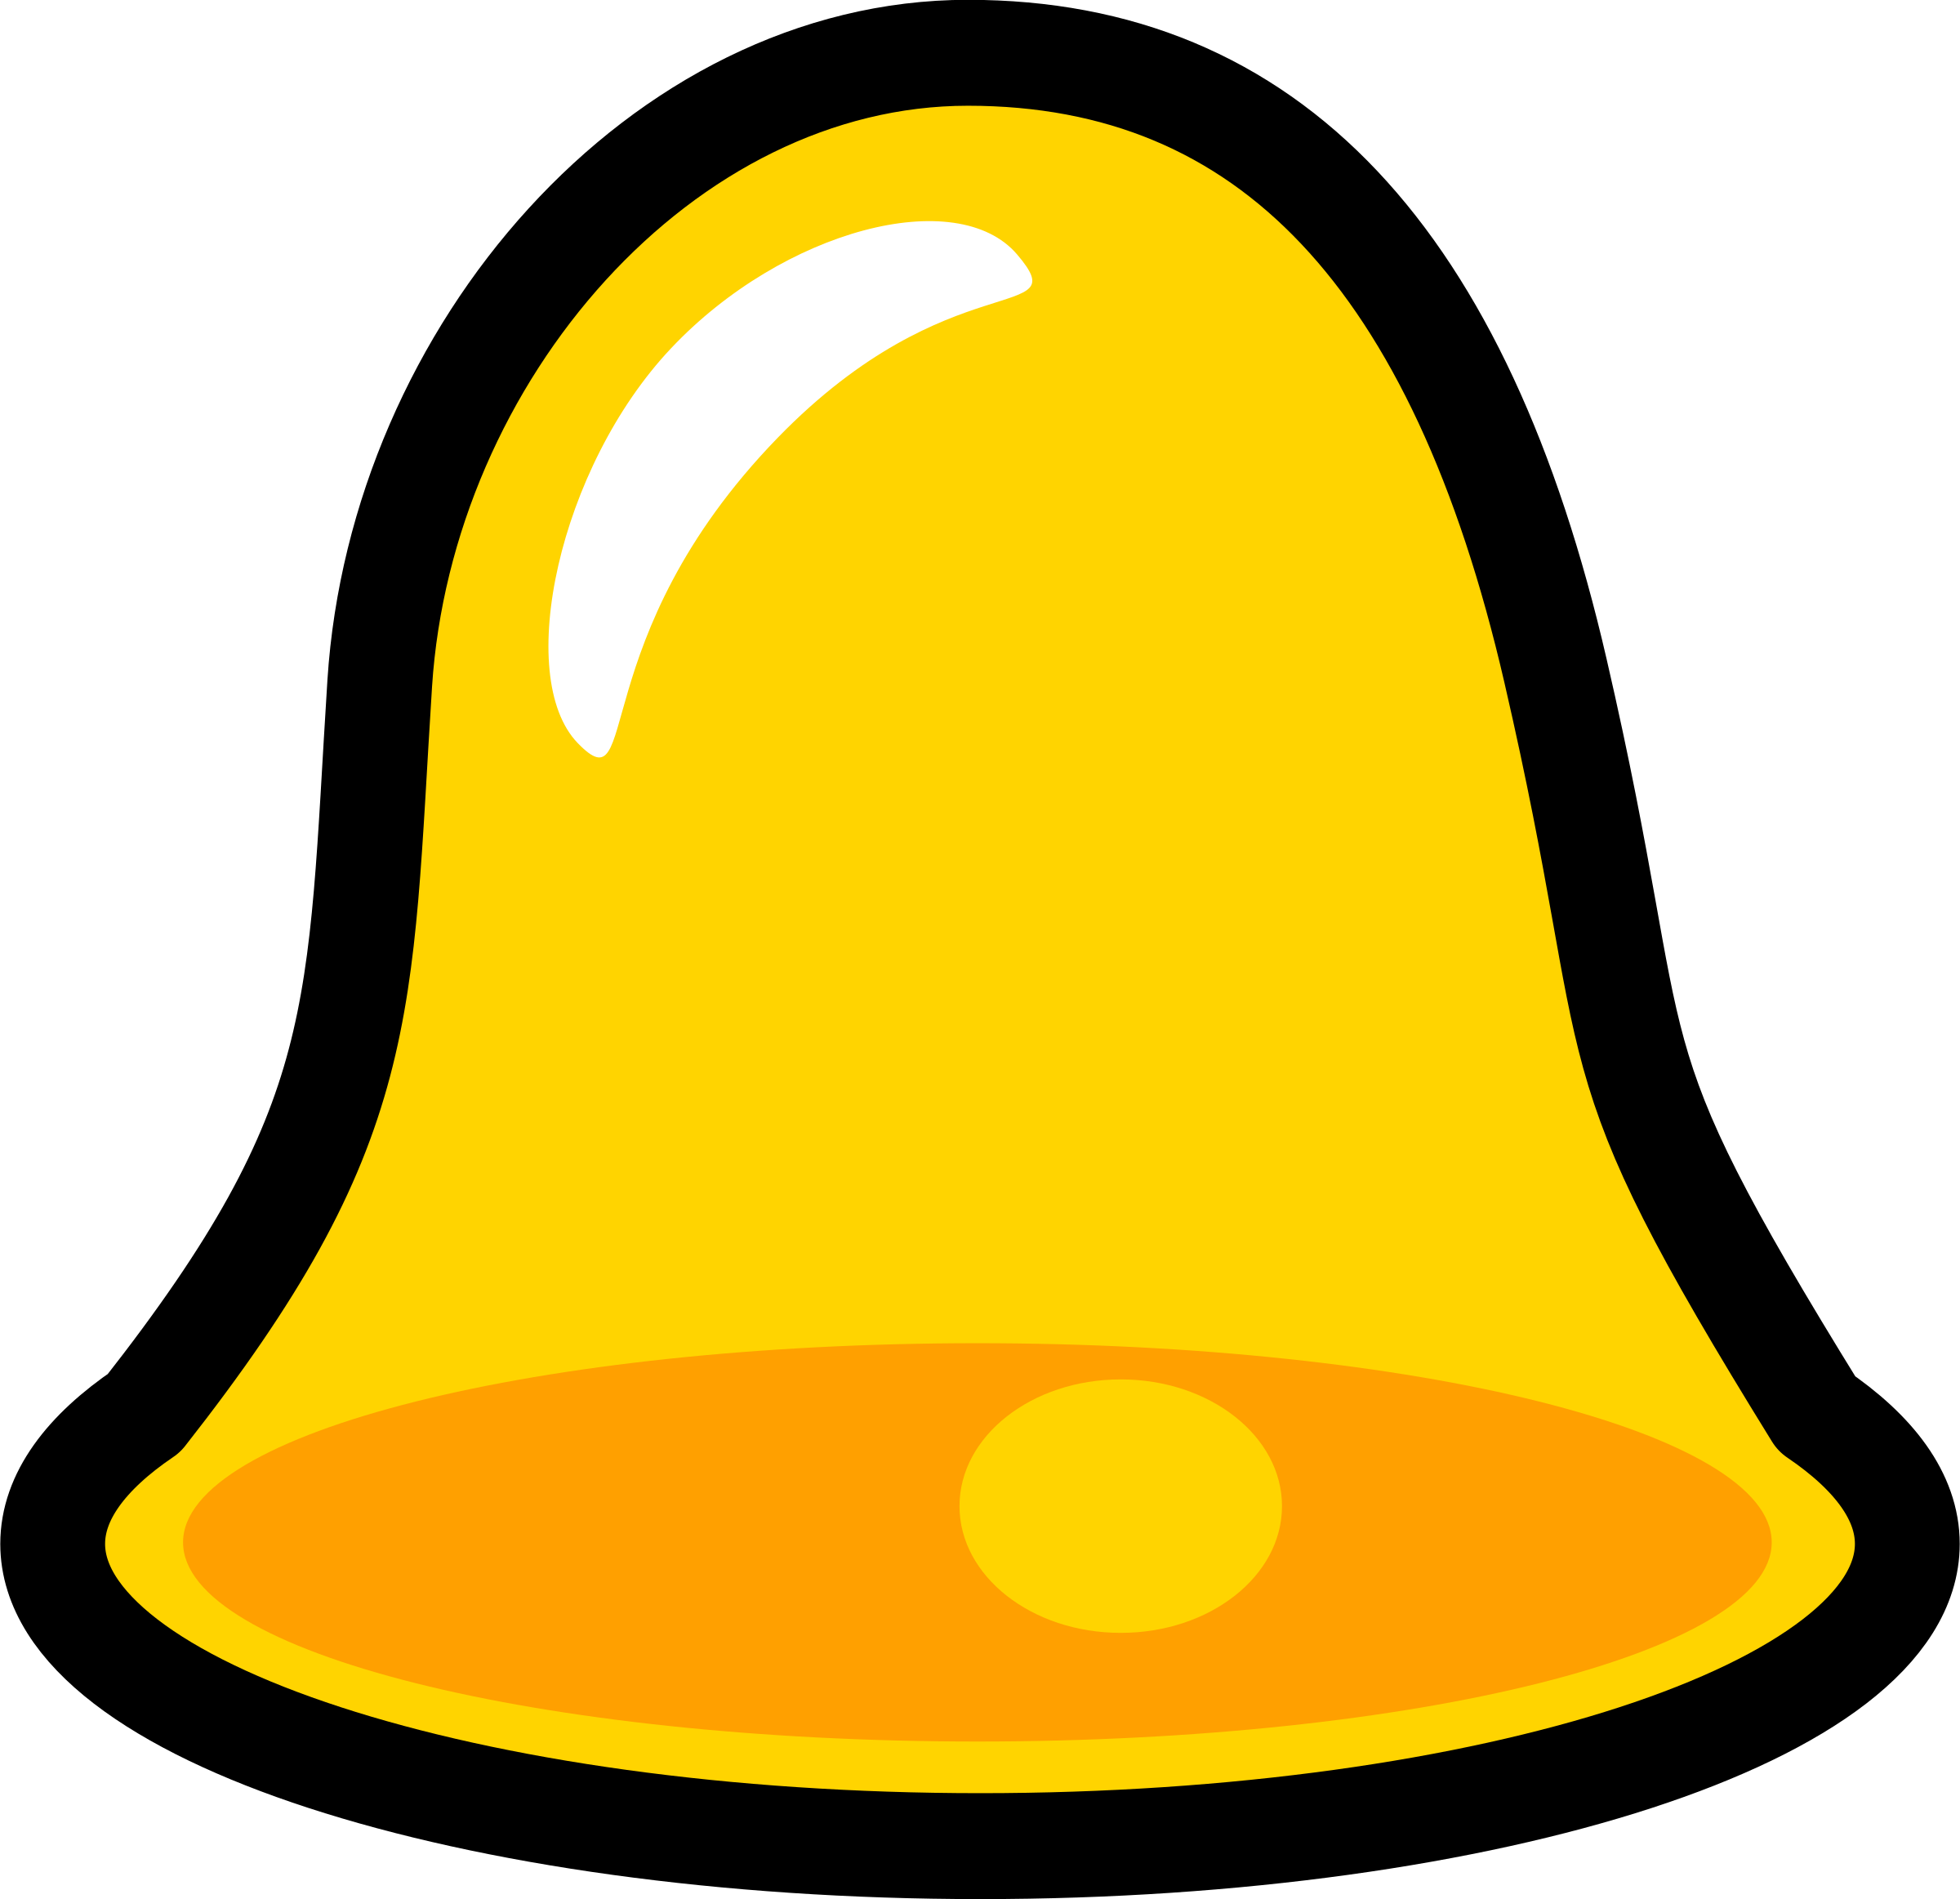 Bell icon png. Clipart yellow that looks